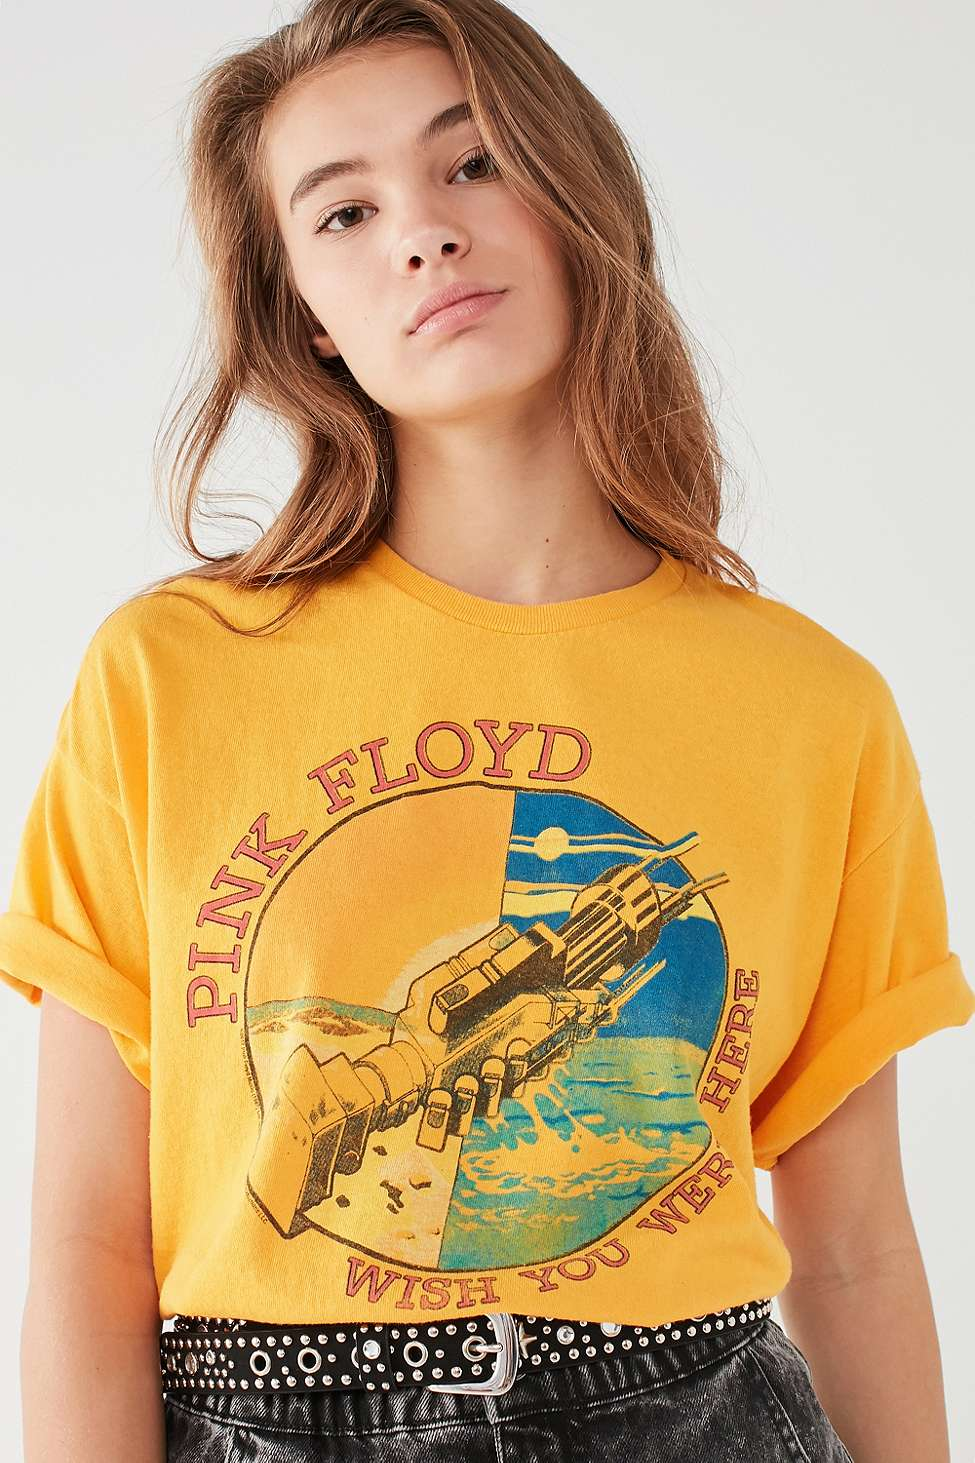 Slide View: 2: Junk Food Pink Floyd T-Shirt